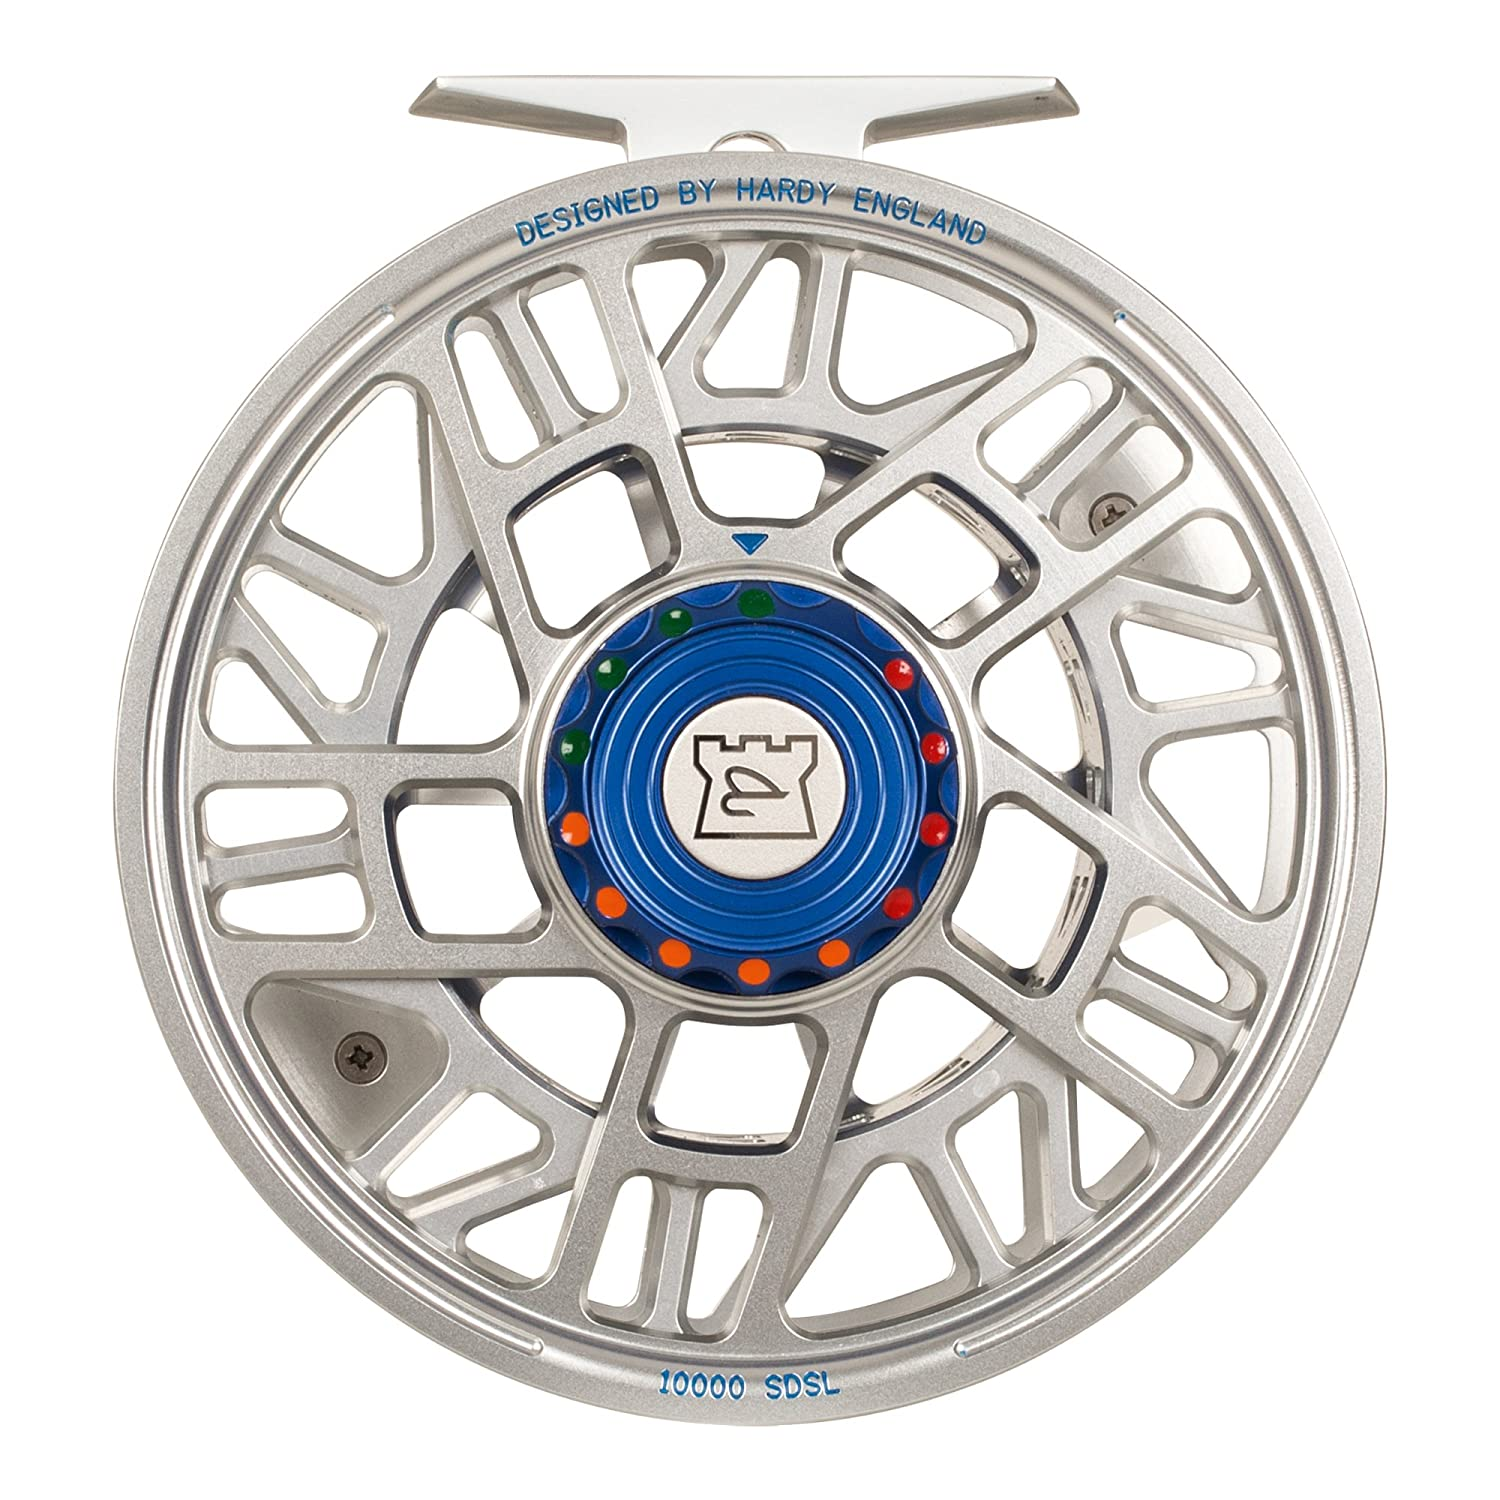 Hardy SDSL Fly Fishing Reel